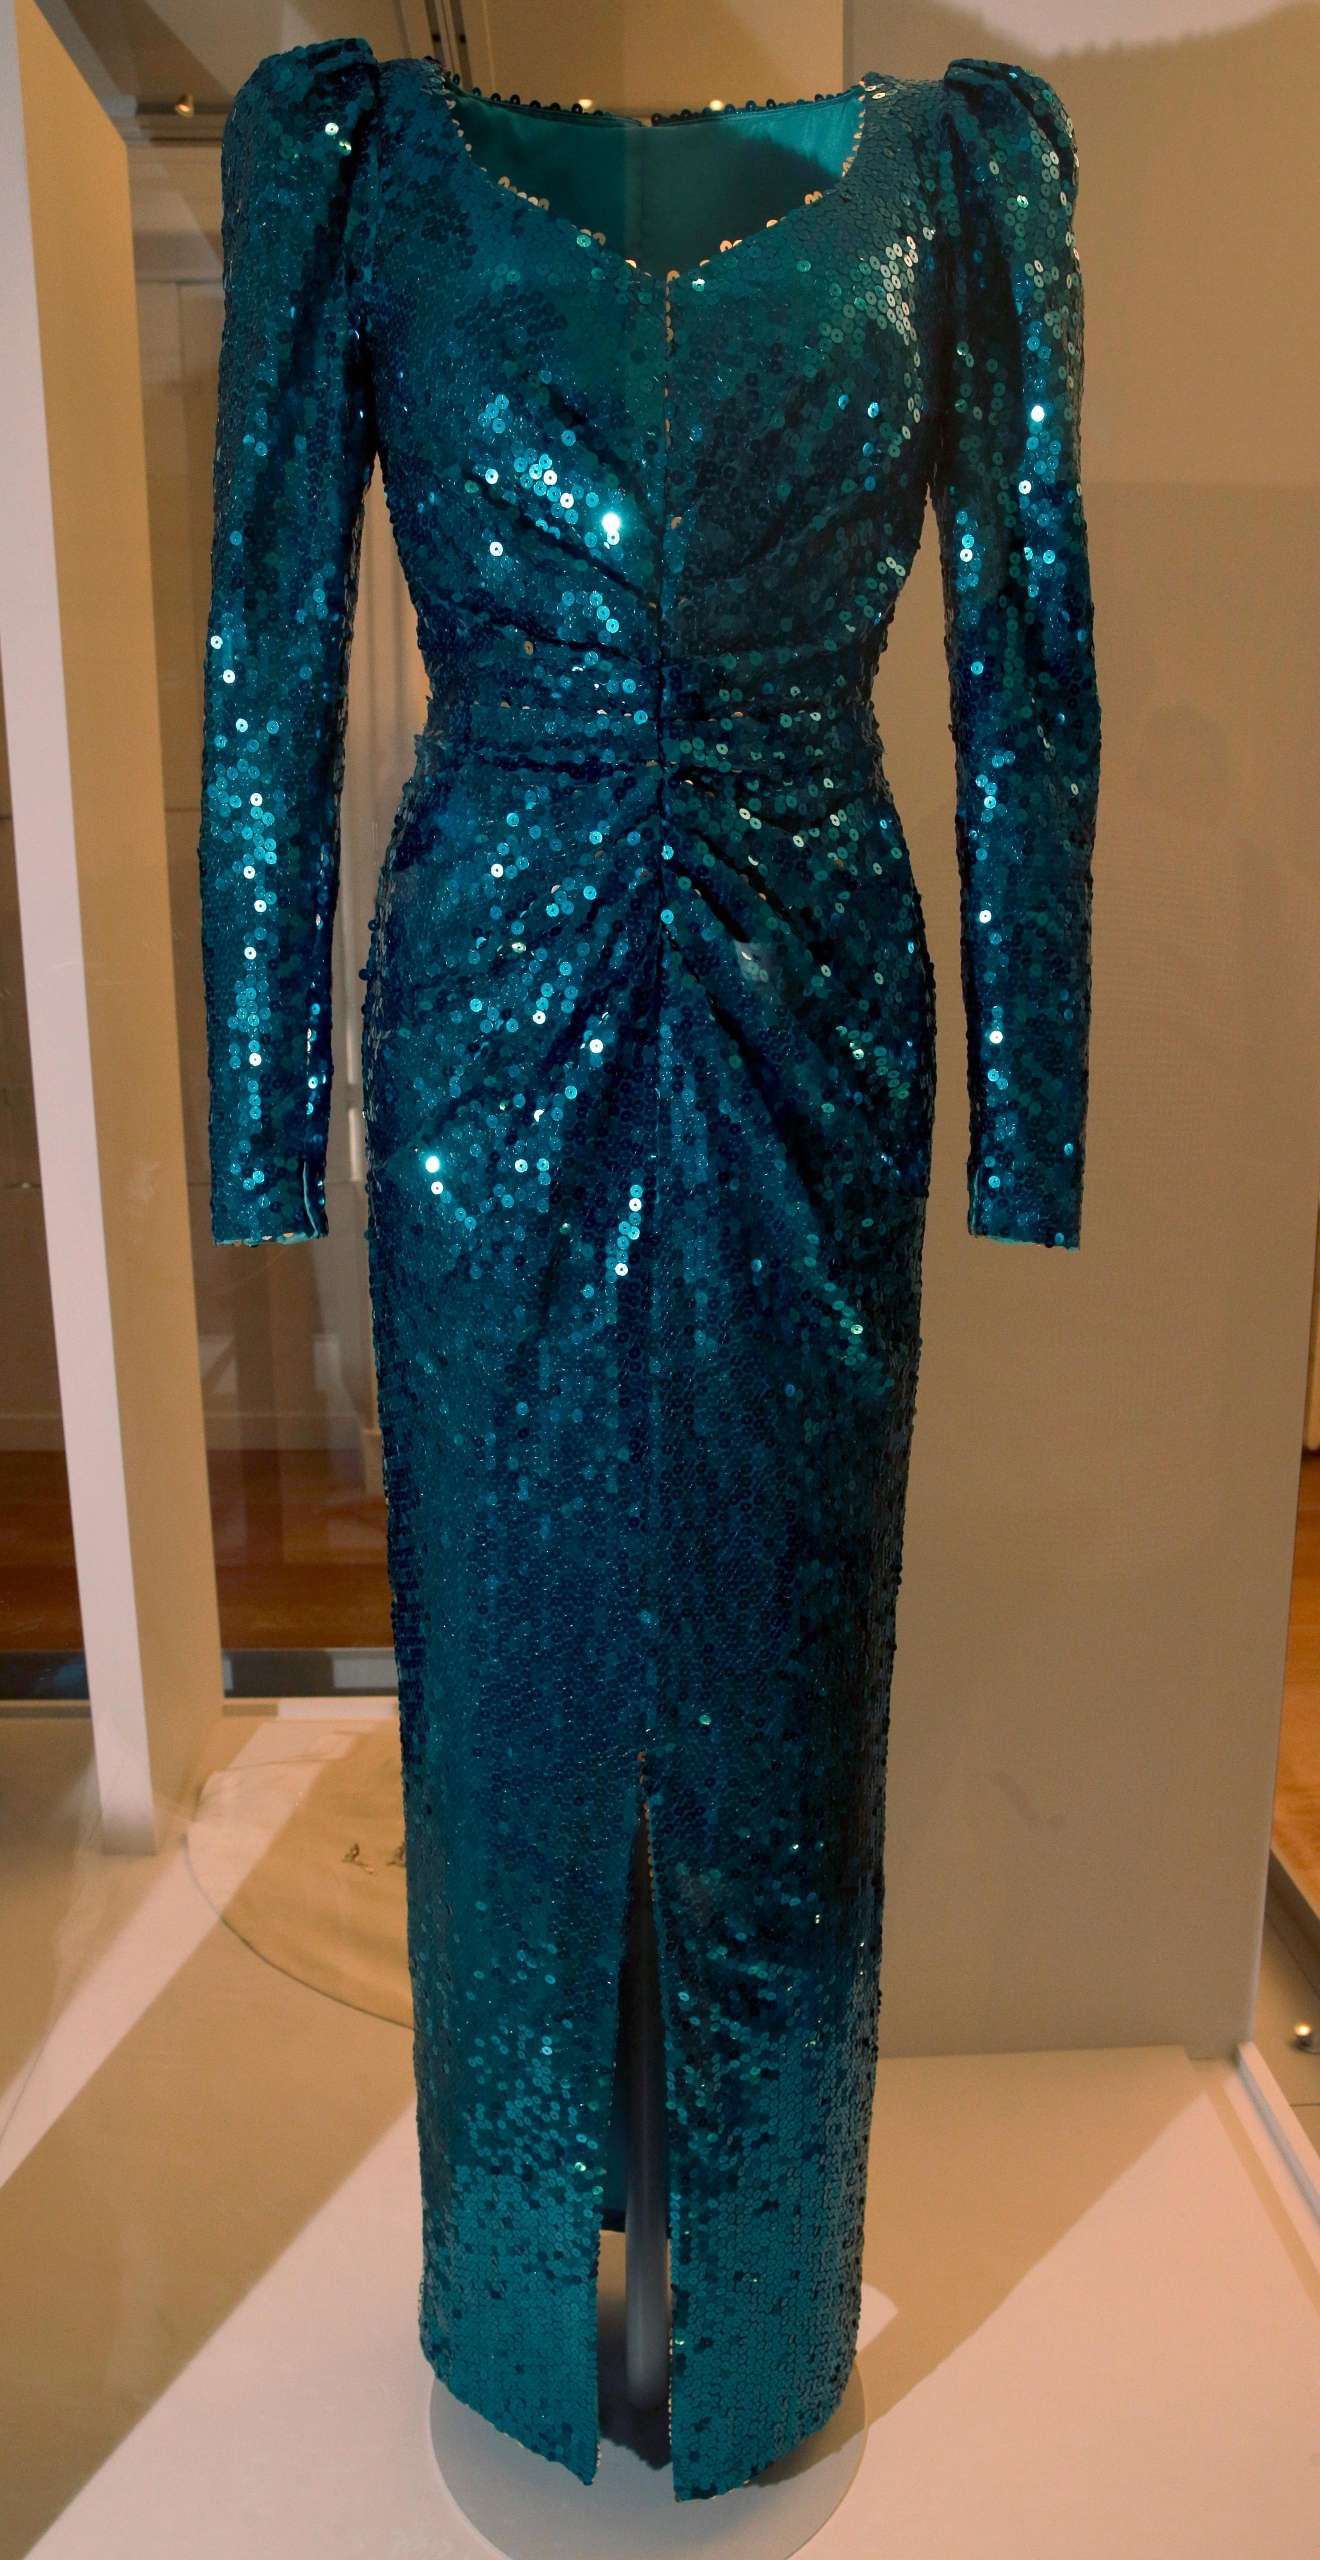 "An evening dress by Catherine Walker of green sequins and worn by Diana, Princess of Wales on an official visit to Austria 1986and two other events on display during a media preview of an exhibition of 25 dresses and outfits worn by Diana entitled ""Diana: Her Fashion Story"" at Kensington Palace in London, Wednesday, Feb. 22, 2017. (AP Photo/Alastair Grant)"